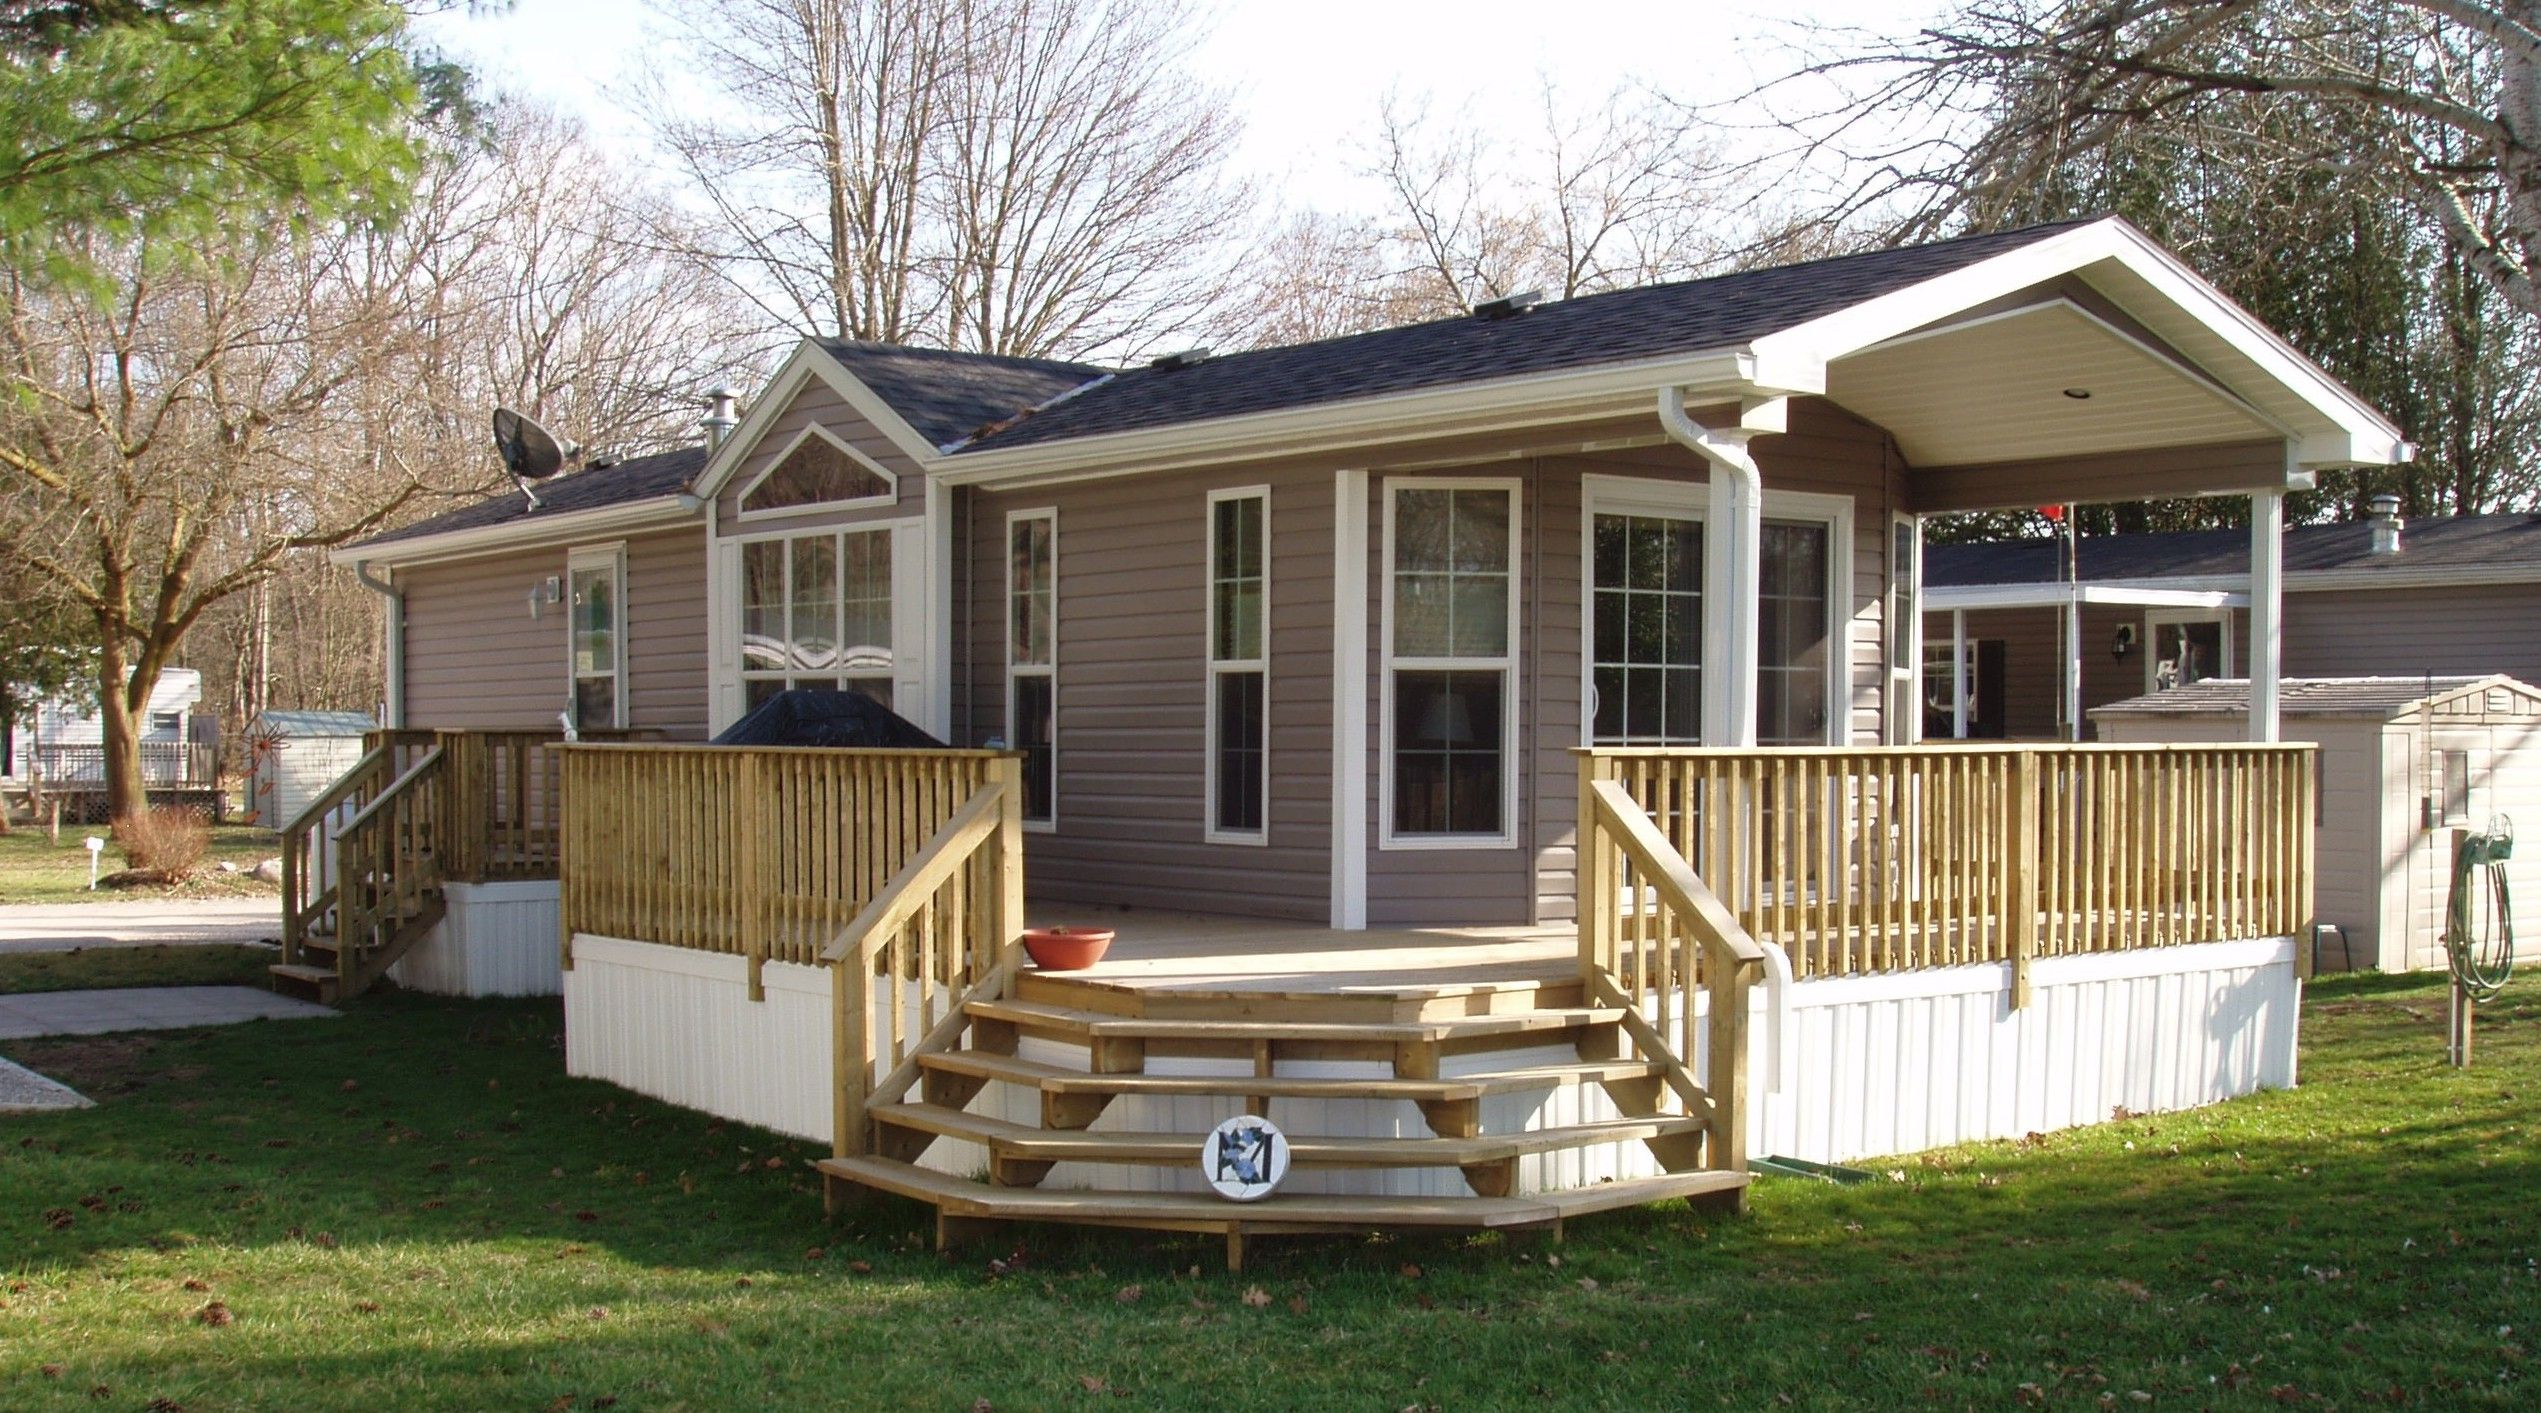 800 Sq Ft Mobile Homes The Regina Single Wide Open Concept One Bedroom Small Mobile Home Porch Manufactured Home Porch Mobile Home Deck